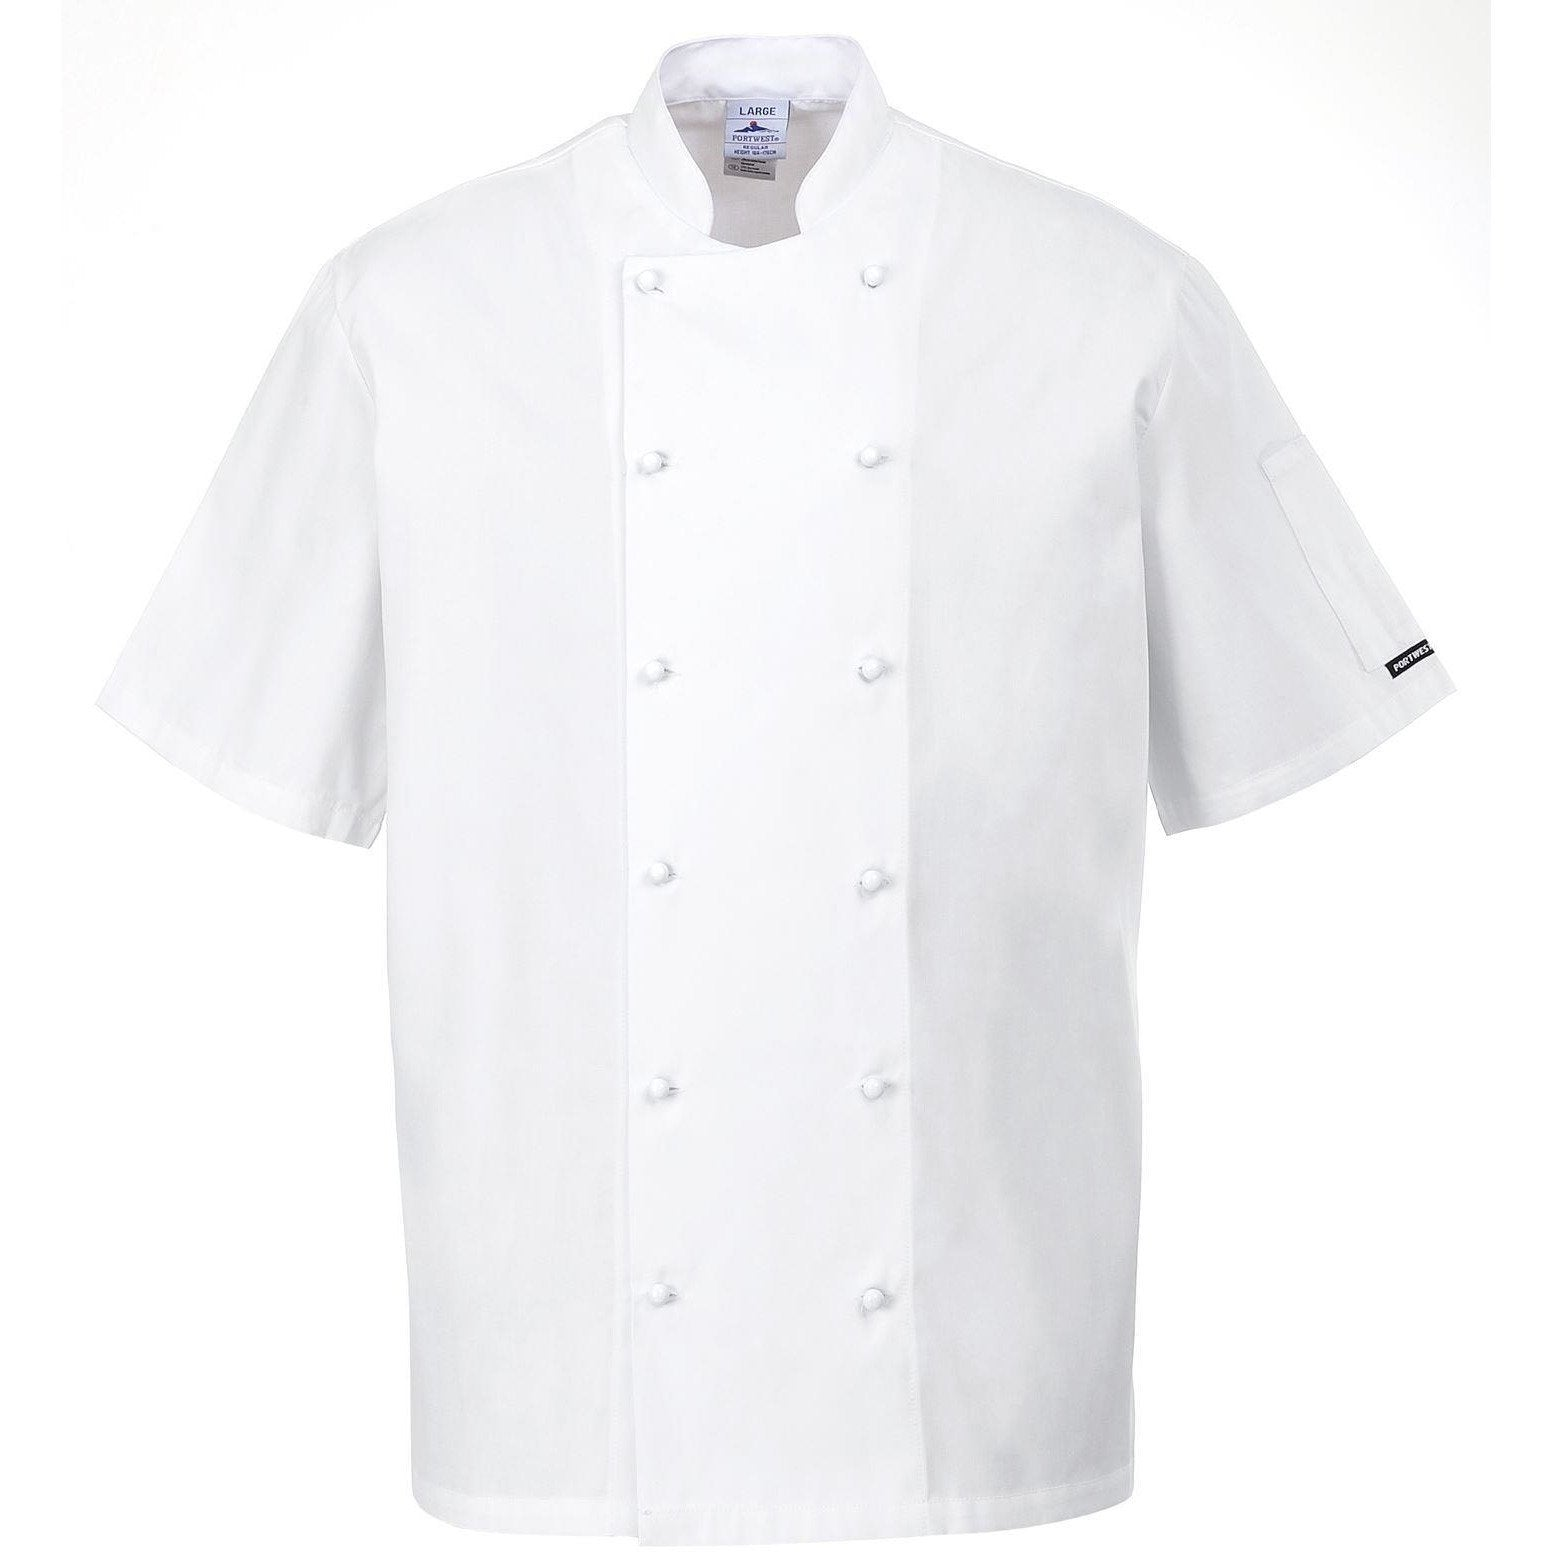 Portwest Newport Chefs Jacket C772 - reid outdoors